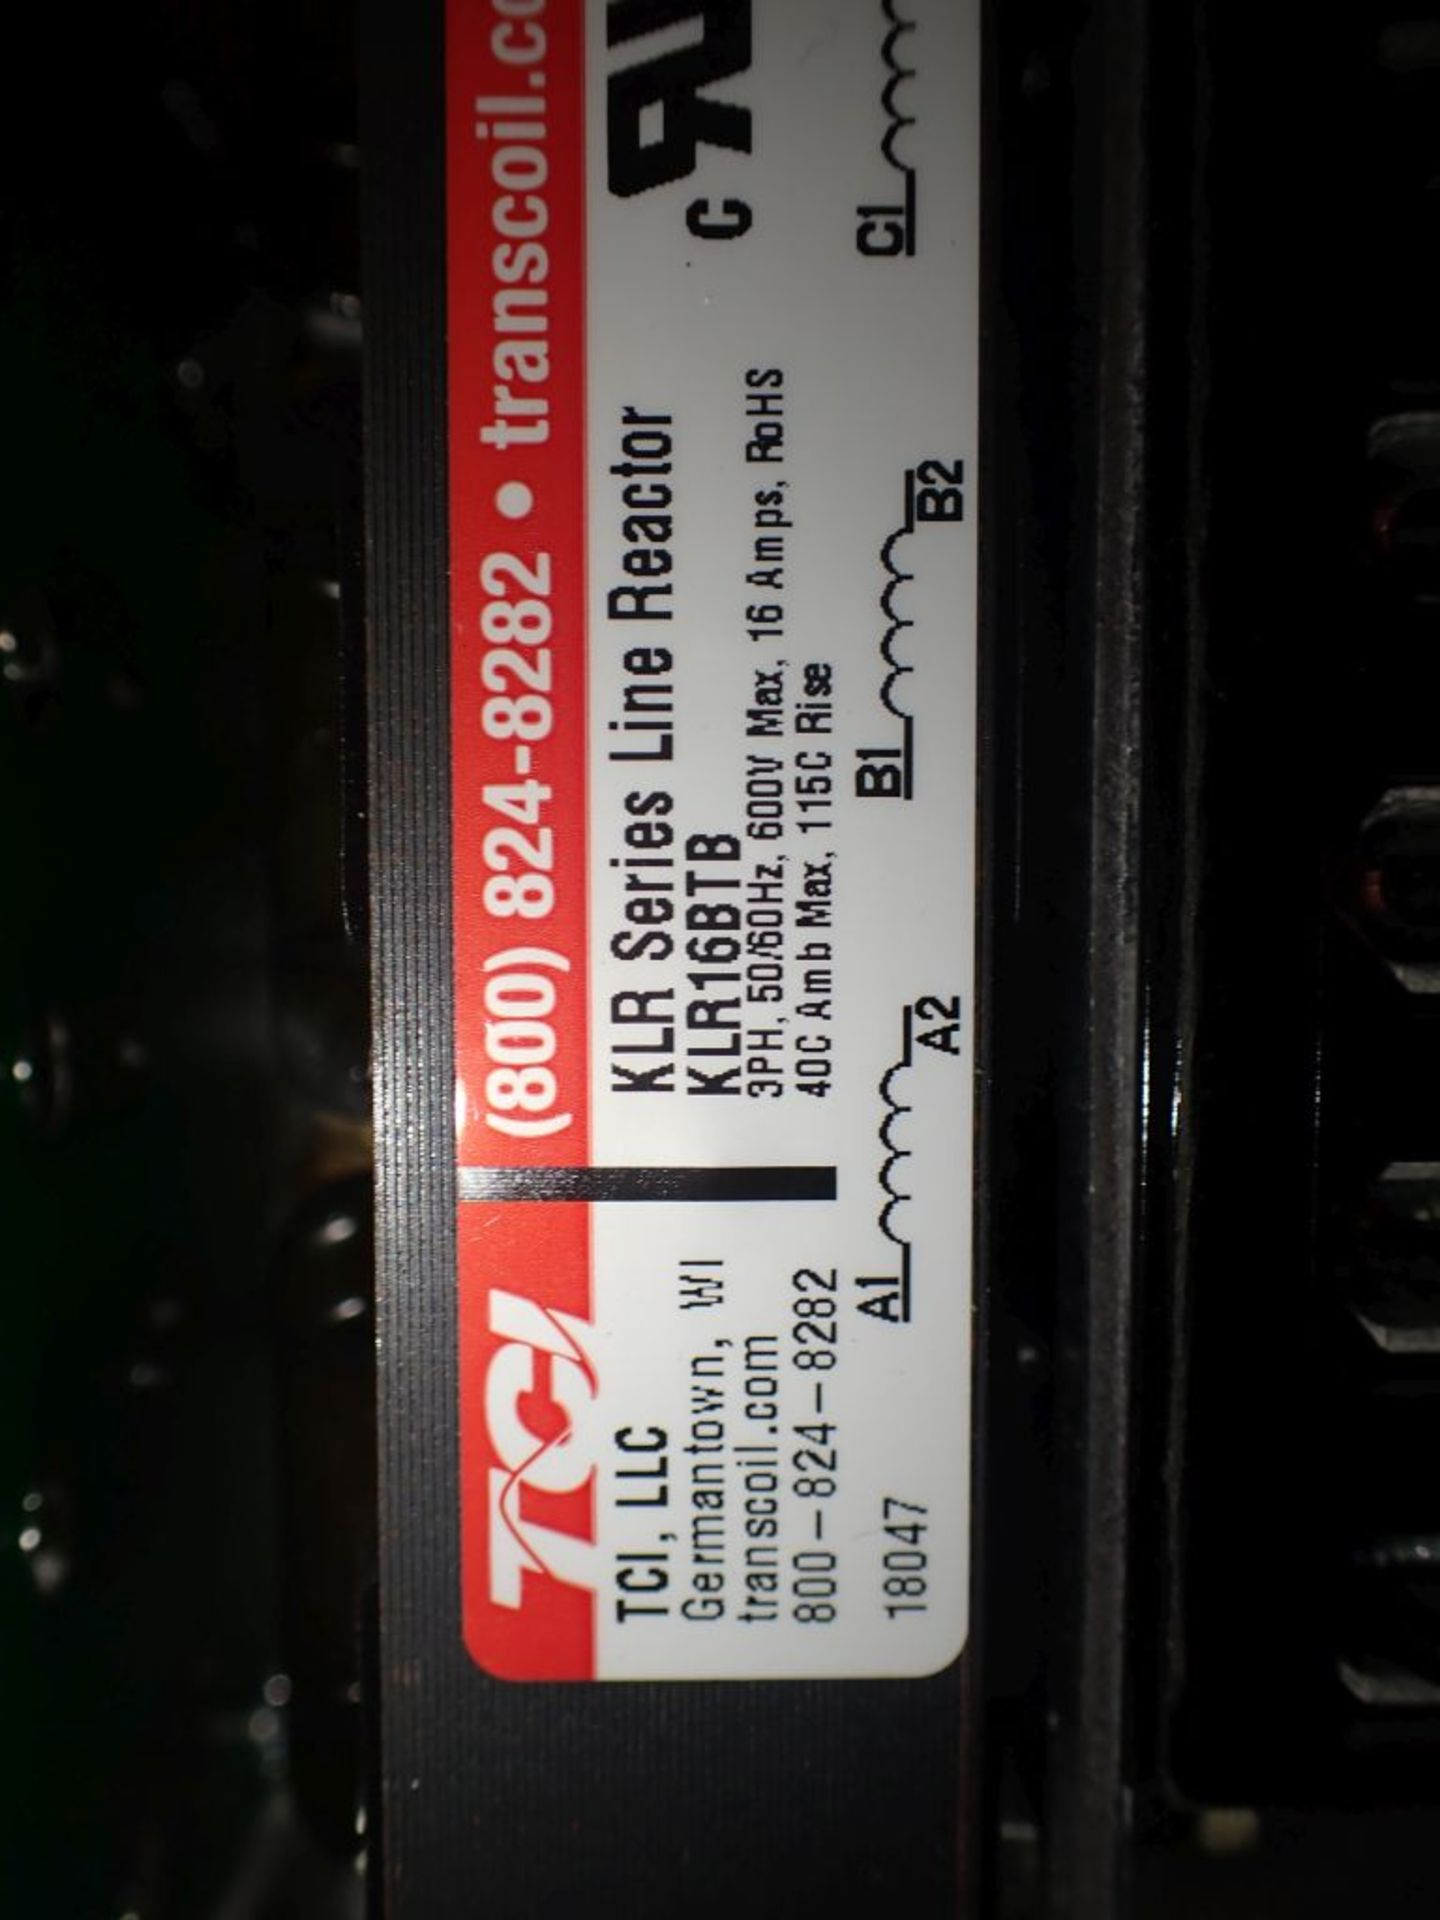 Eaton Freedom 2100 Series Motor Control Center | (2) F206-7A-10HP; (3) F206-15A-10HP; (1) FDRB-100A; - Image 23 of 87